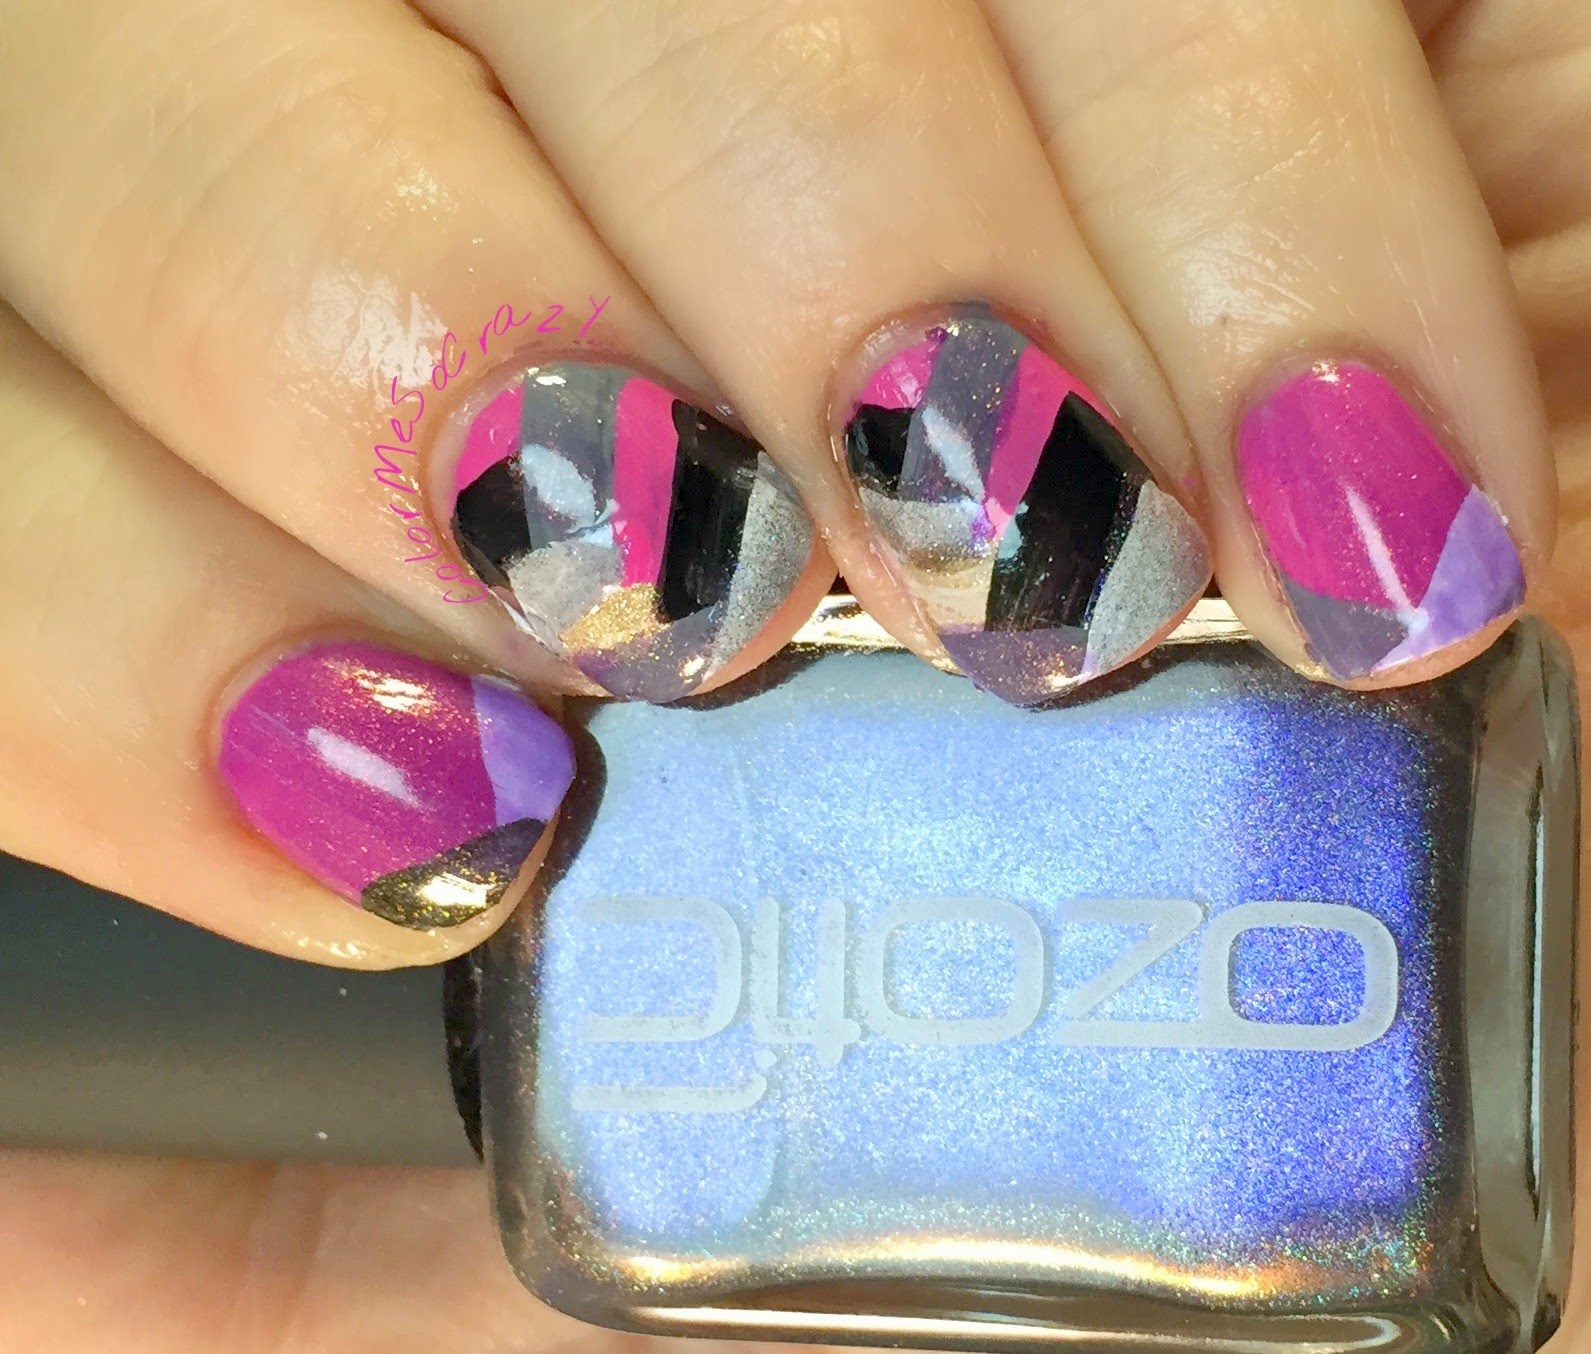 52 Week Challenge presents Fish Braid with Non-Glitter Topper, max factor fantasy fire, zoya, rica, ozitic, maybelline, nopi